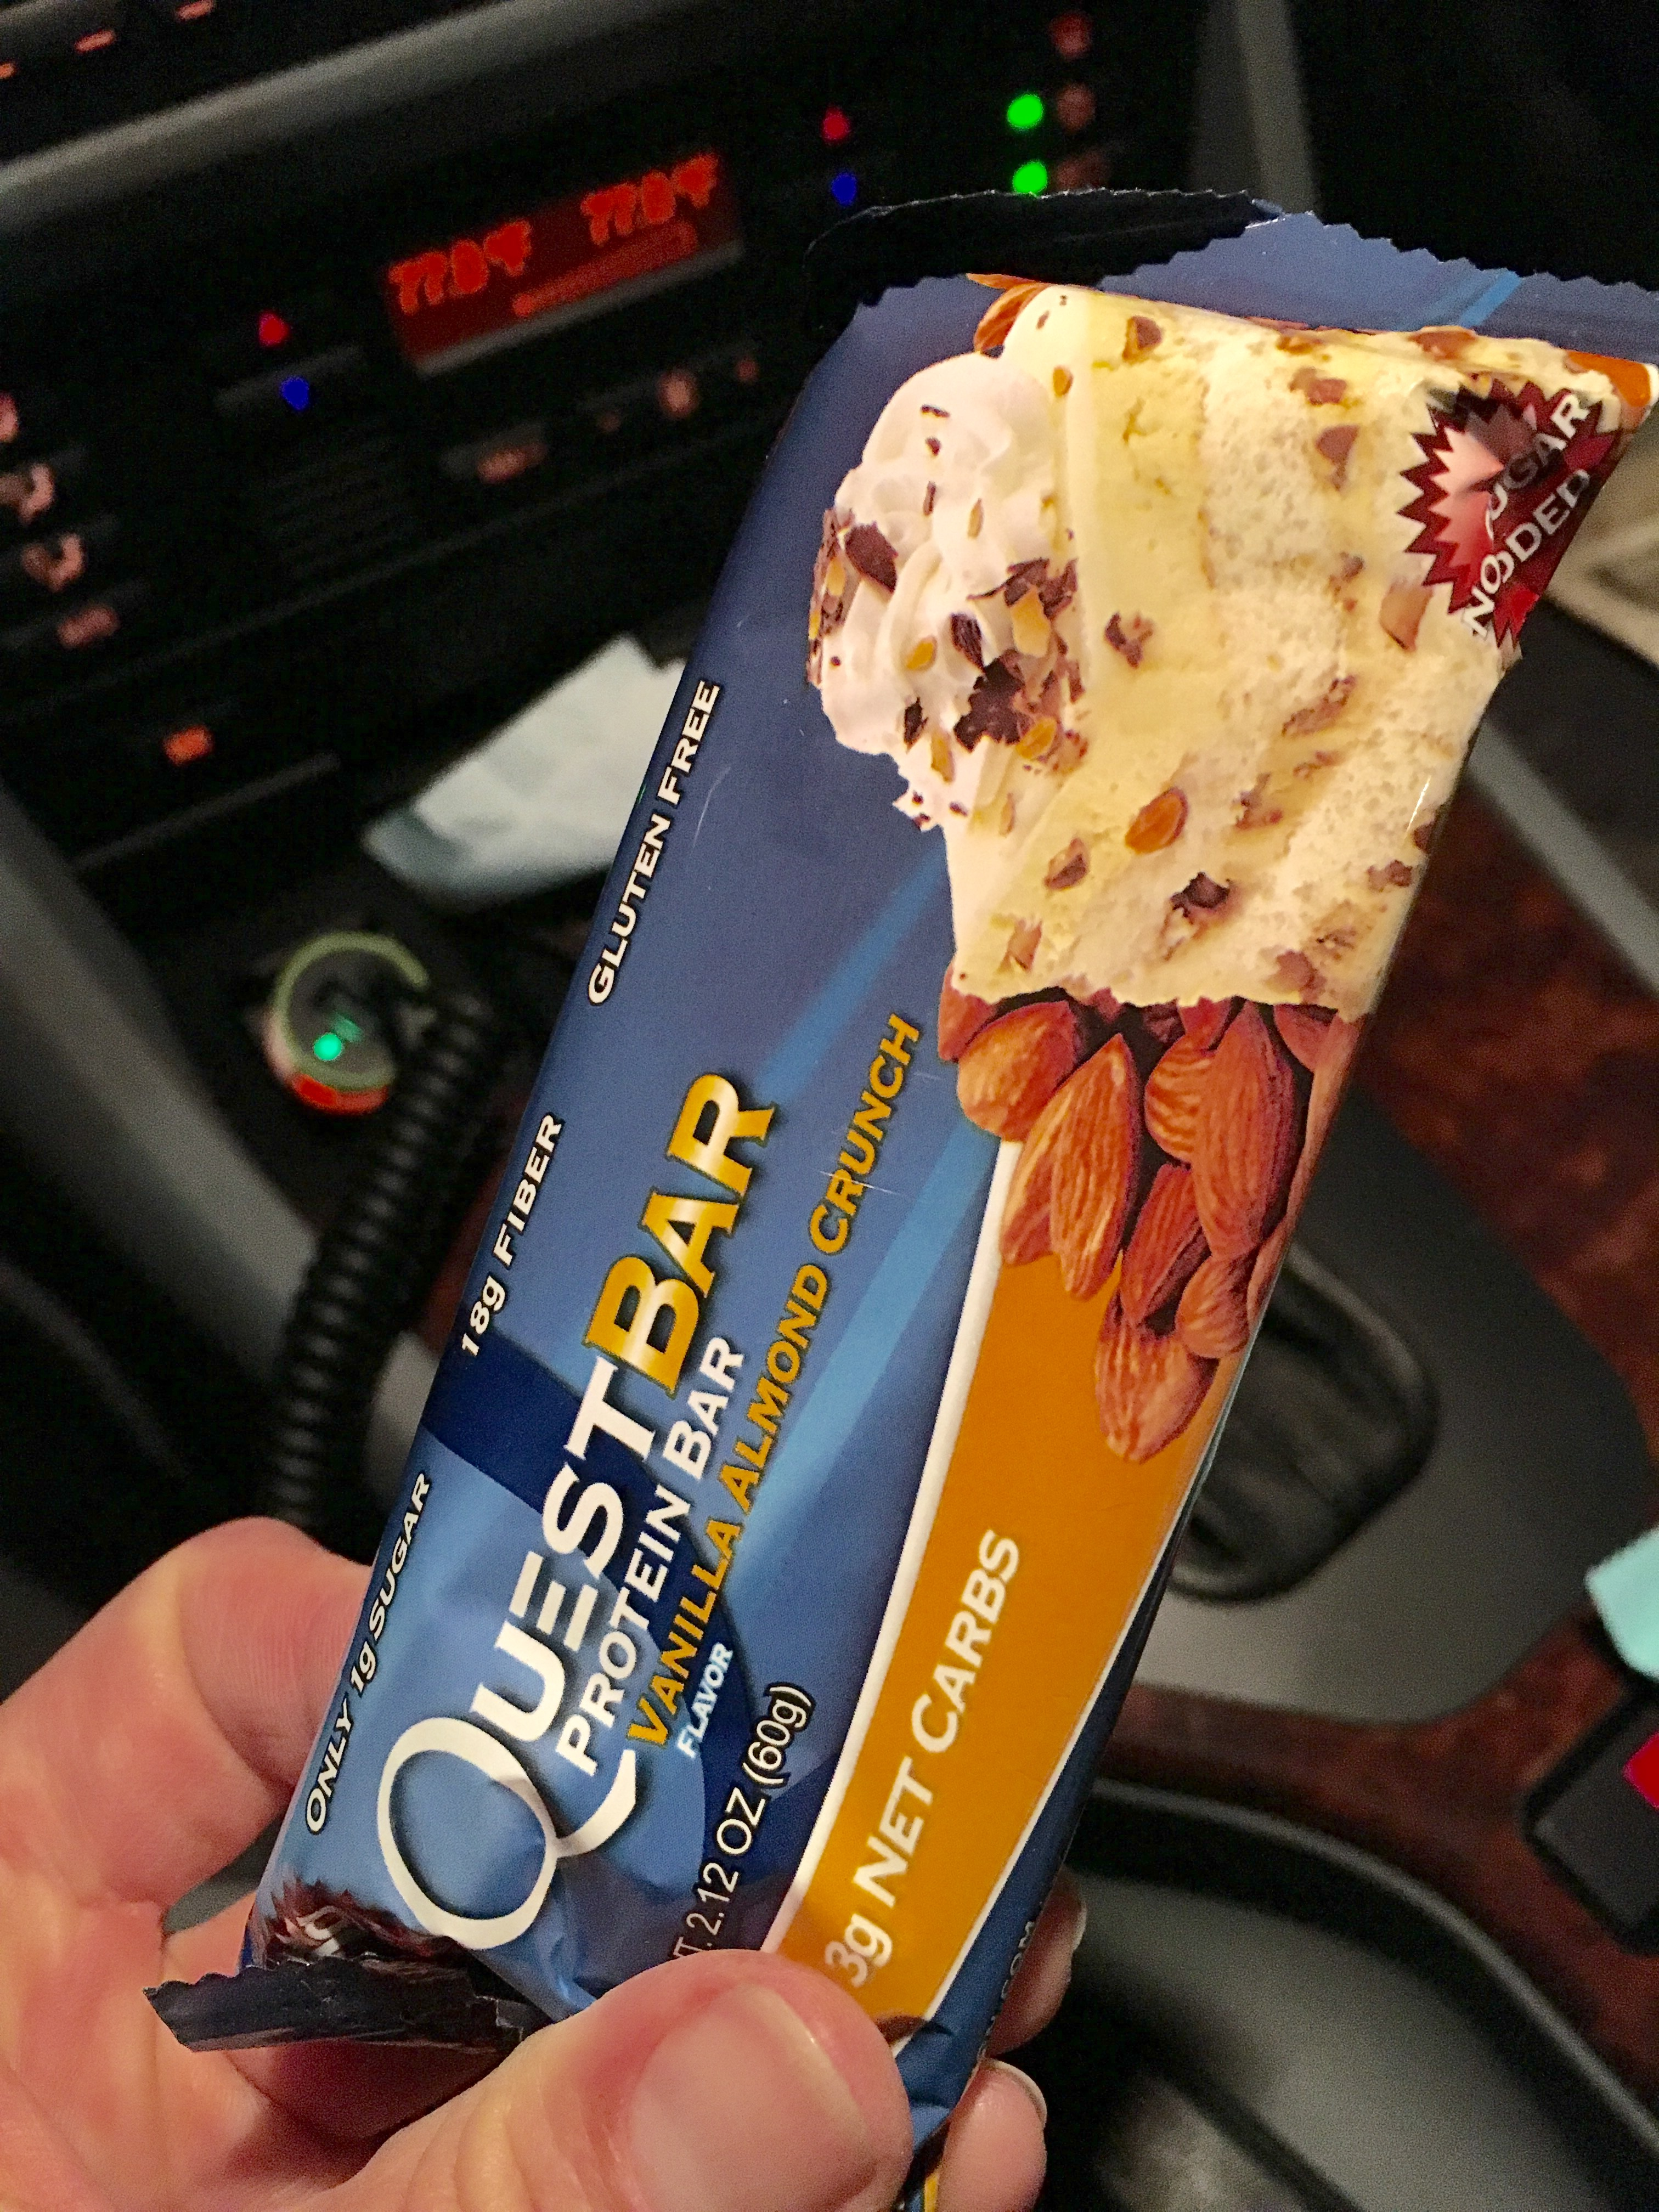 Quest bar - easy snack on the go!